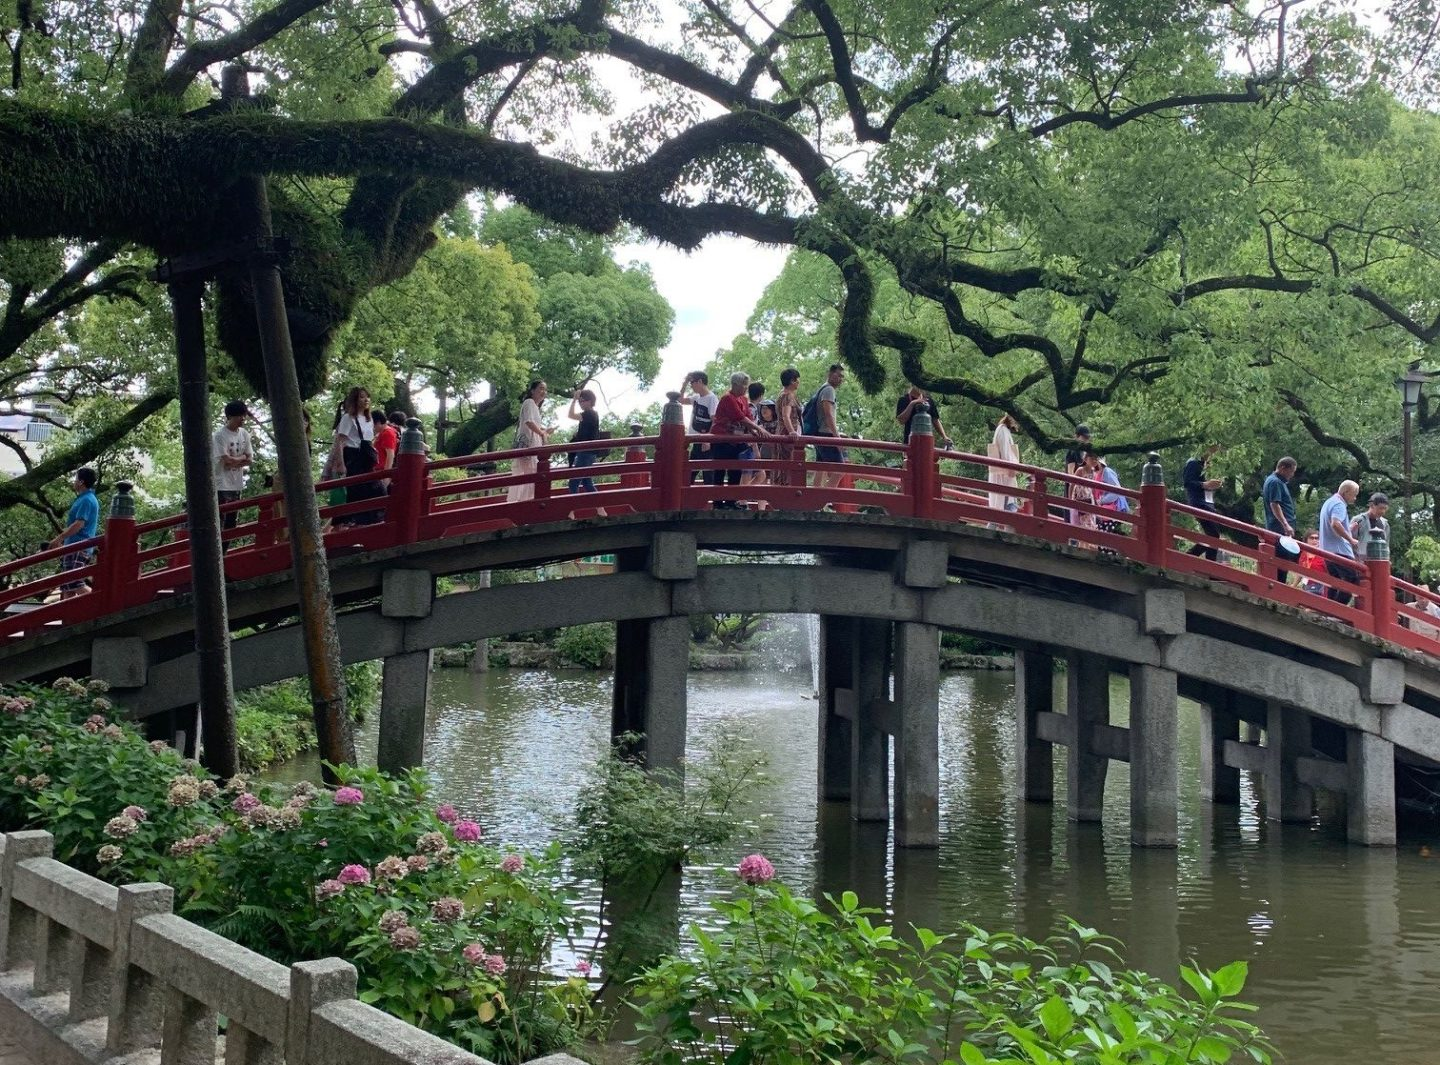 Taking the Leap: A First Time Traveler's Experience in Japan